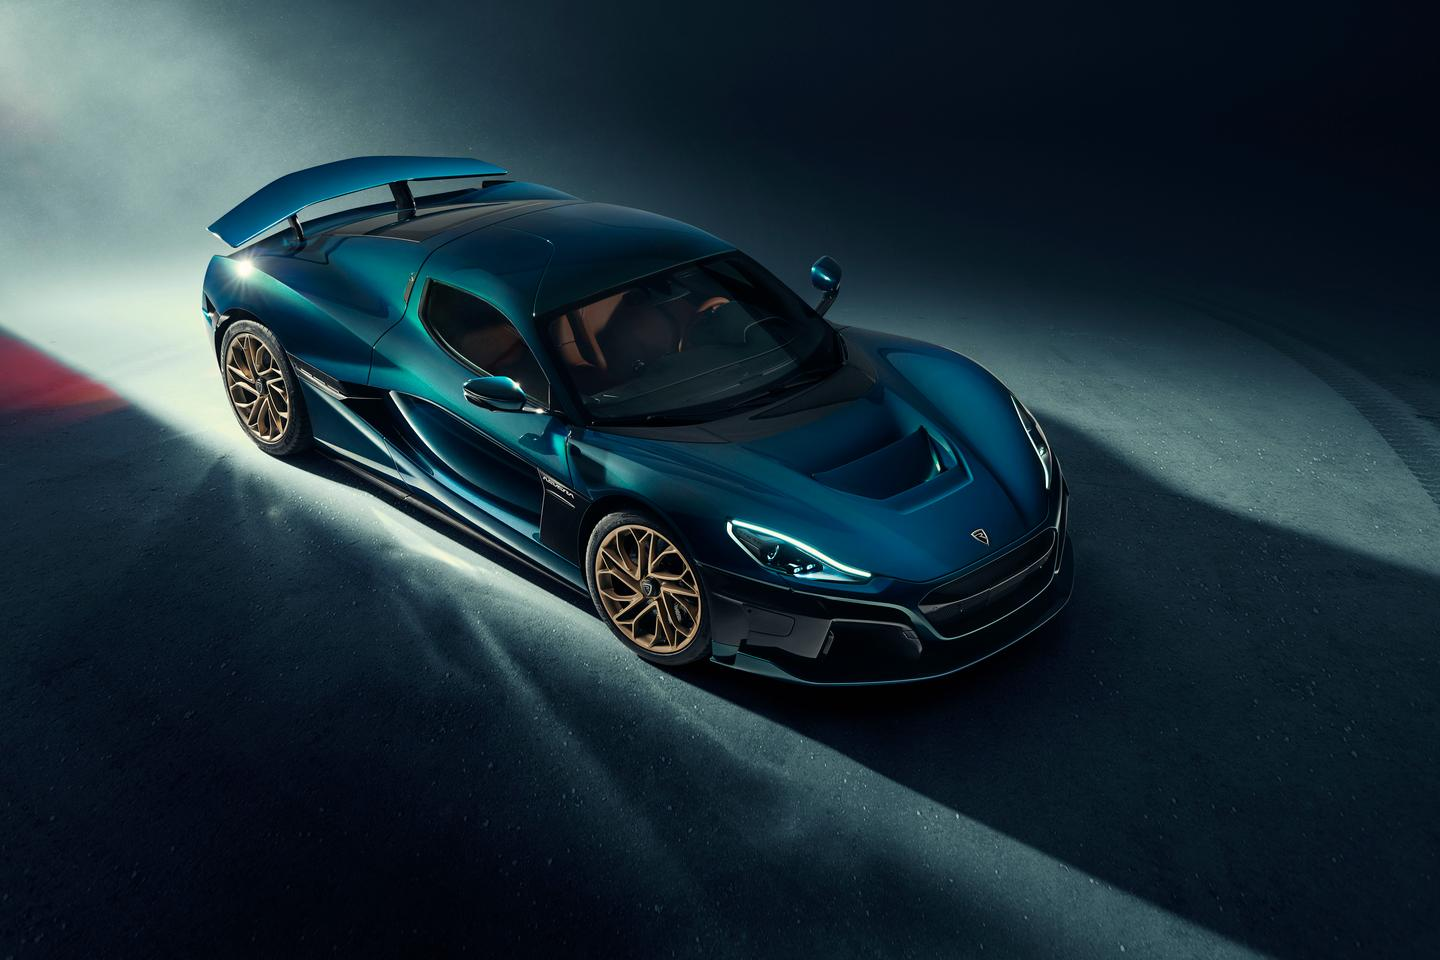 After three years of refinement, development and testing, the C_Two becomes the production-ready Rimac Nevera